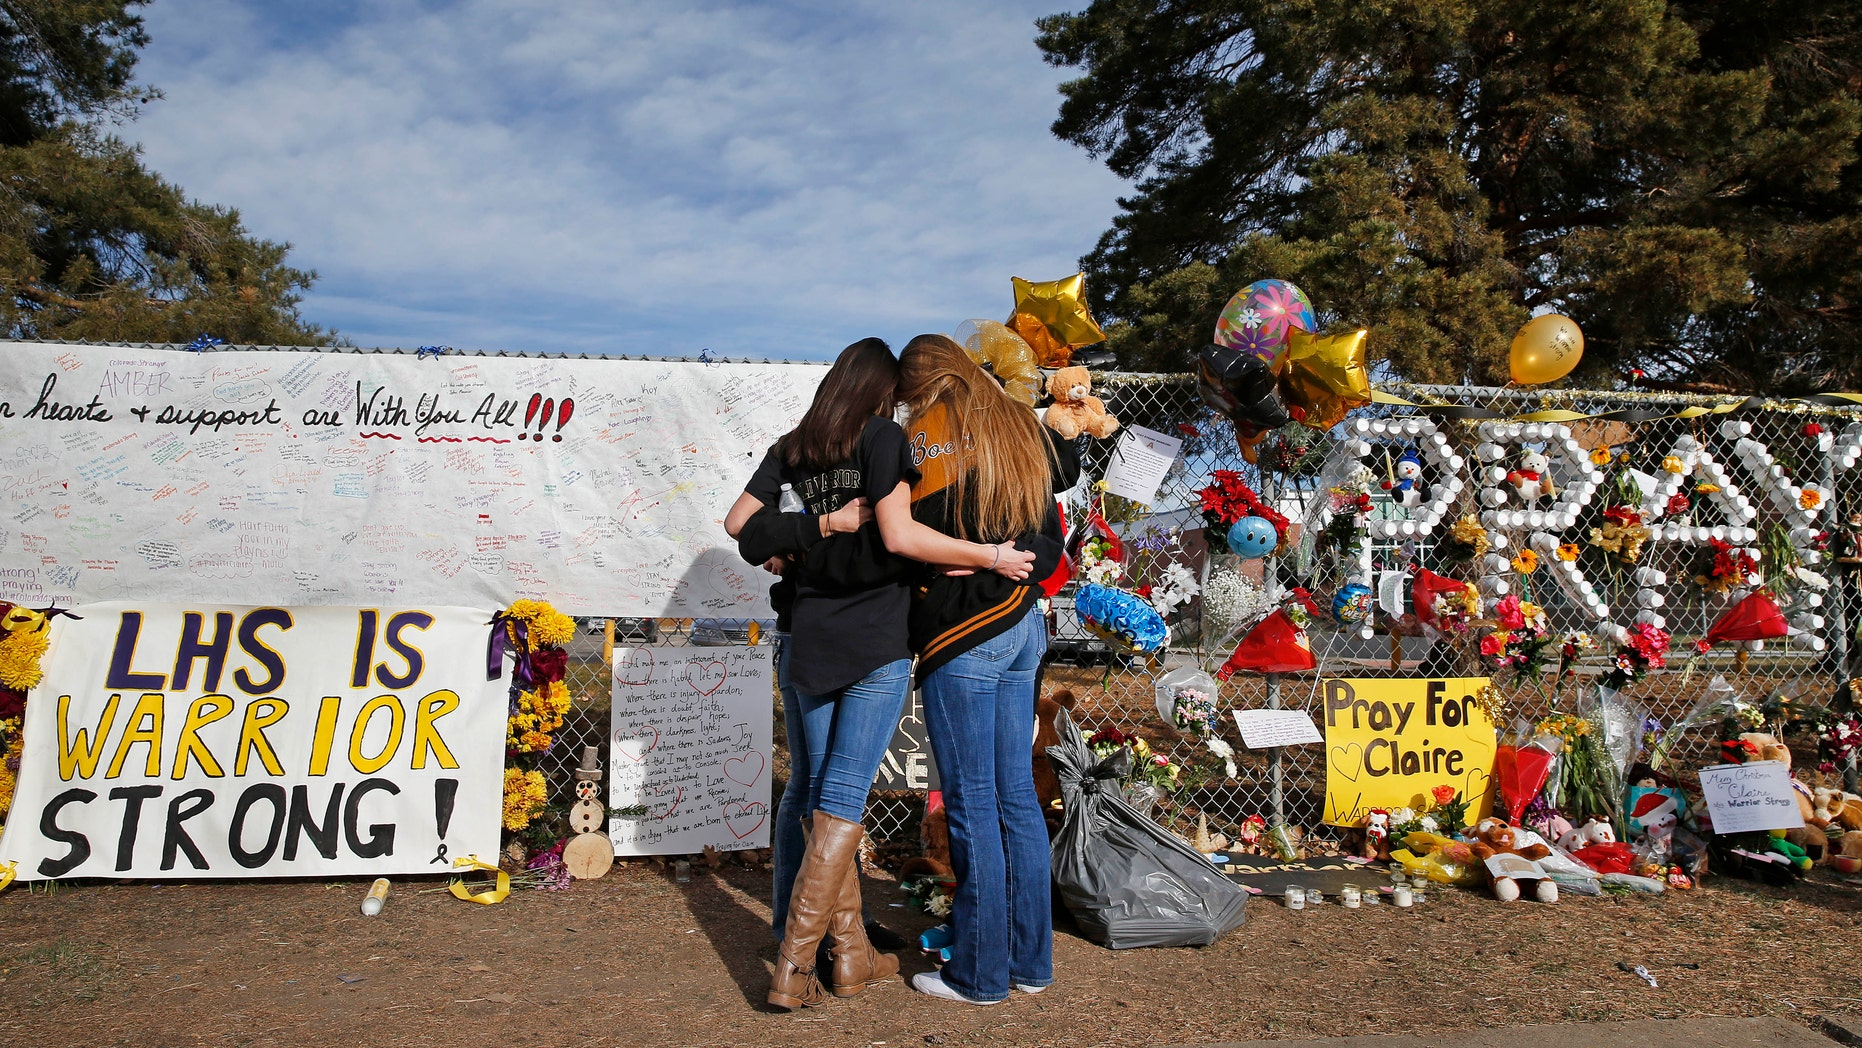 Dec. 19, 2013: In this file photo, Arapahoe High School students hug at a tribute site for fatally-wounded student Claire Davis, who was shot by classmate Karl Pierson during a school attack six days earlier at Arapahoe High School, in Centennial, Colo.